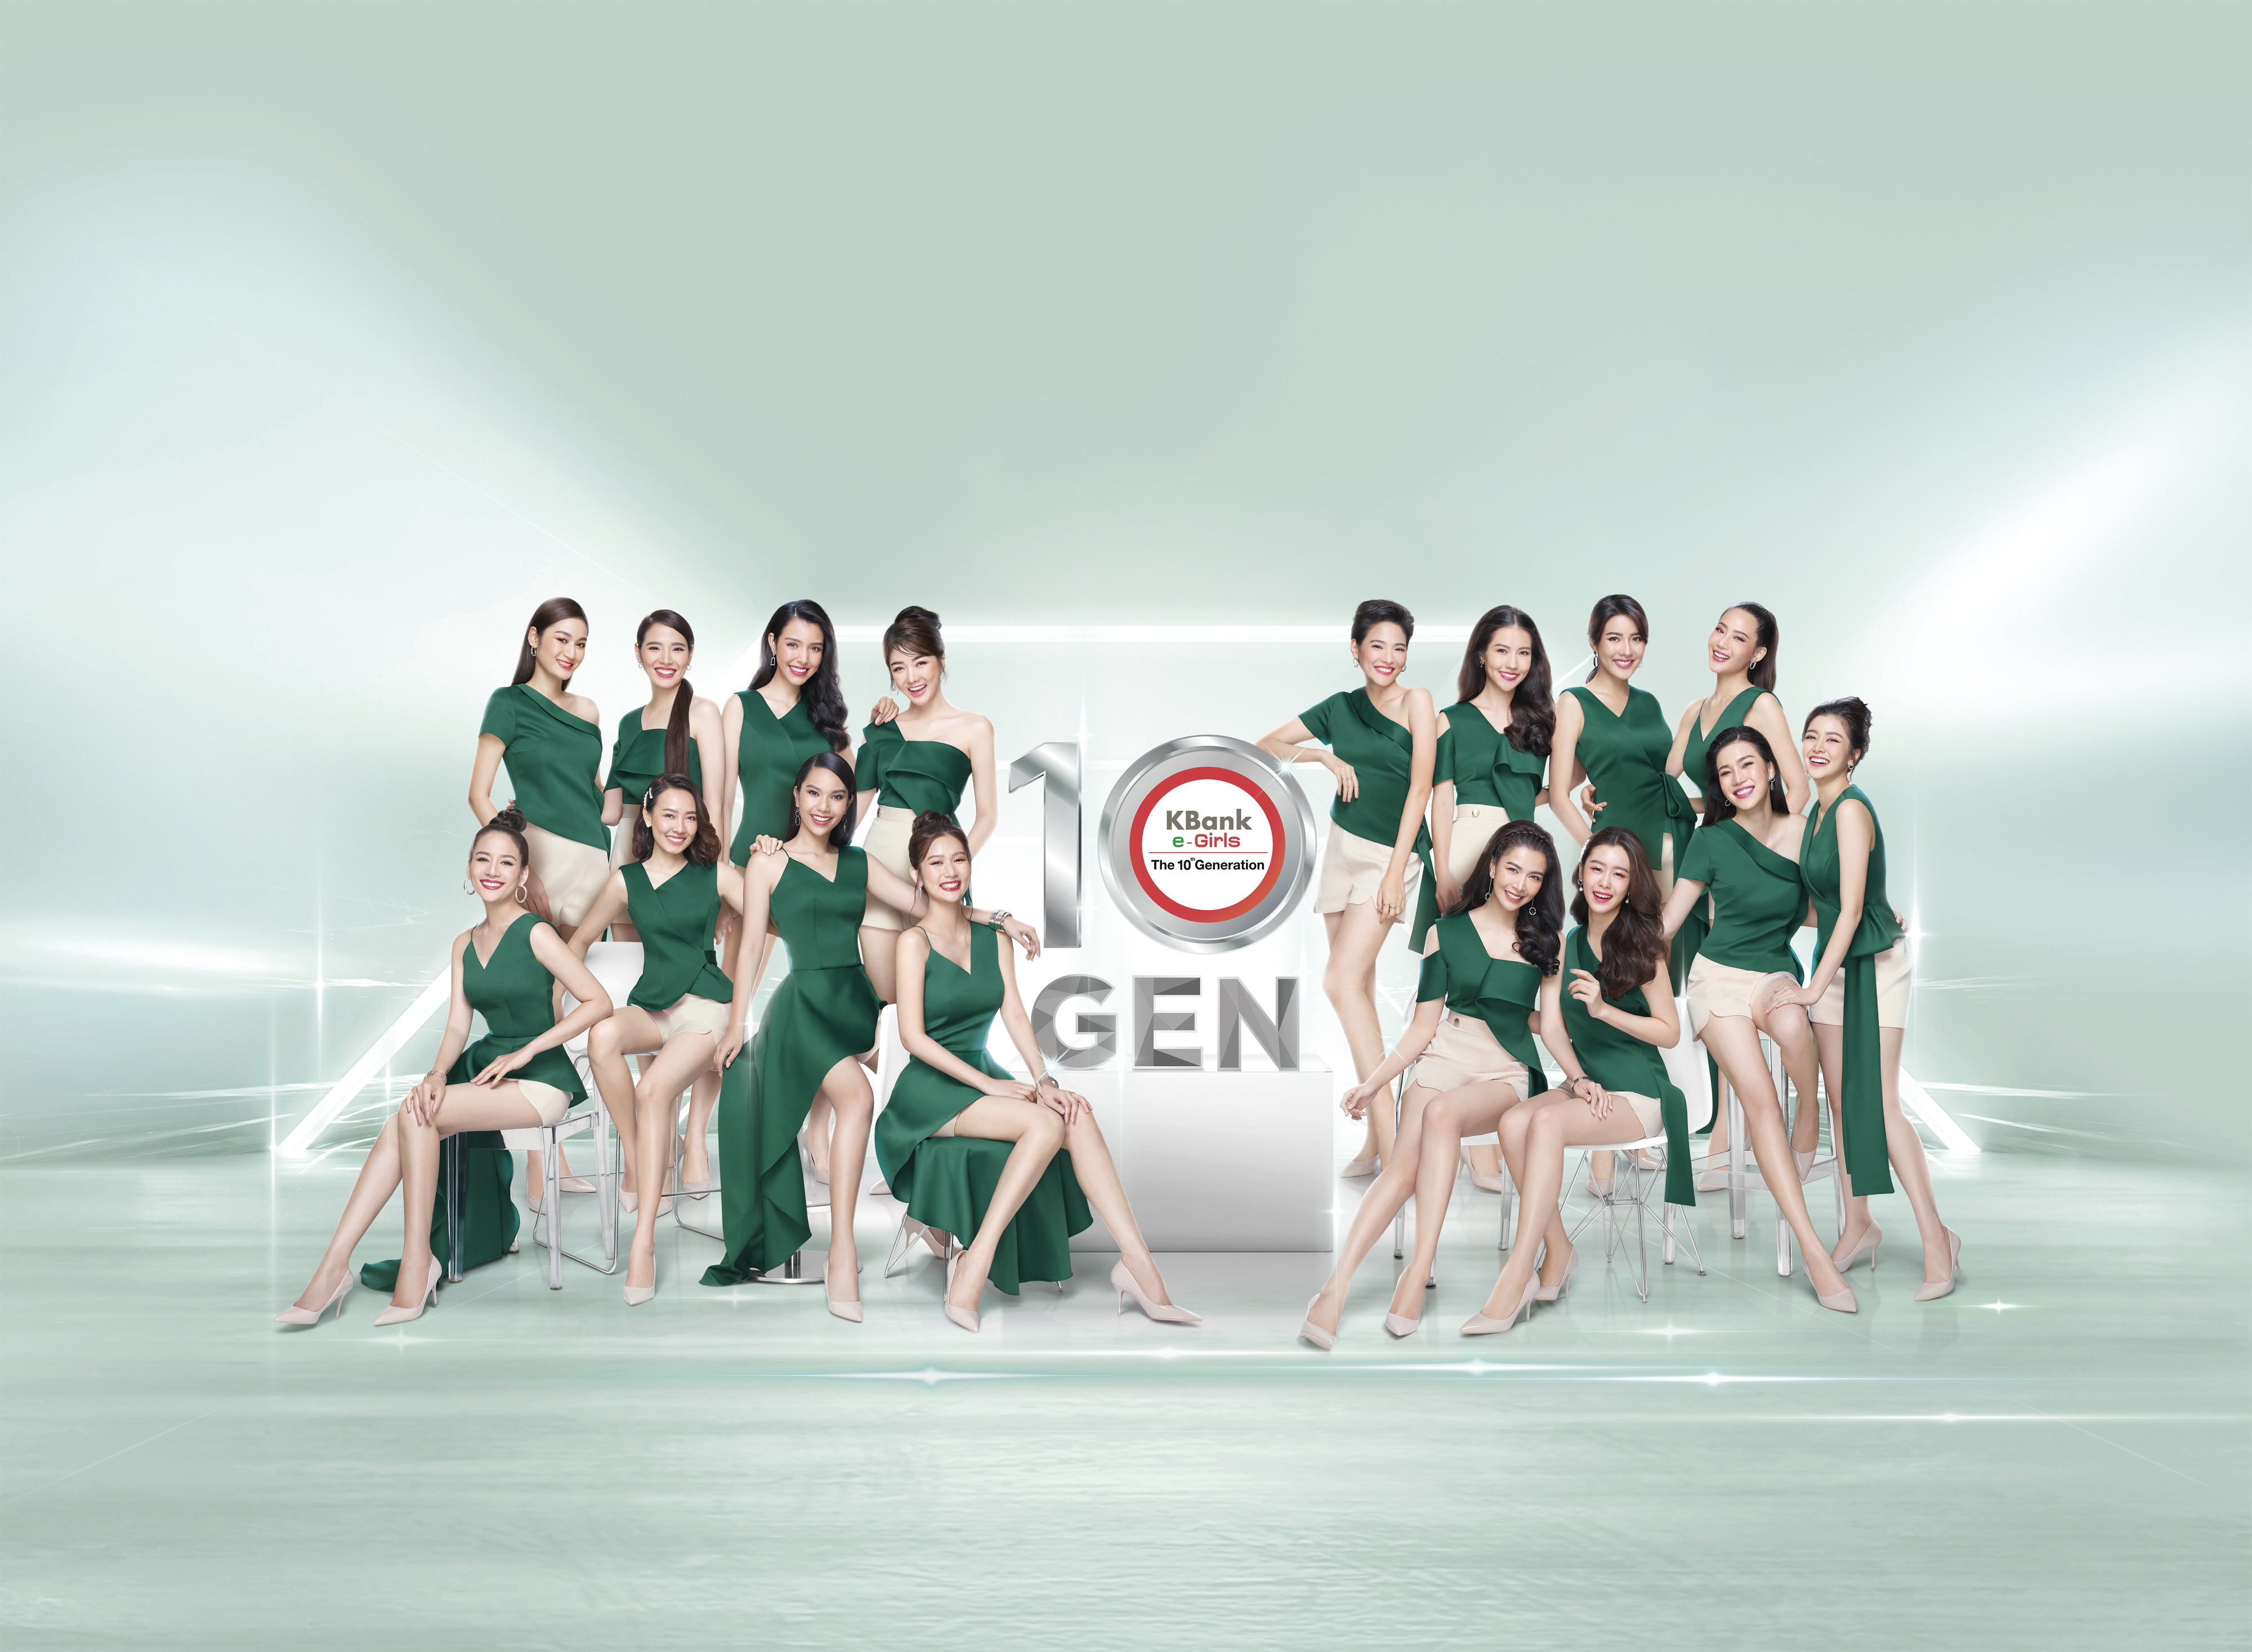 Hi-res_K-Bank_e-Girls_Gen10_CMYK copy